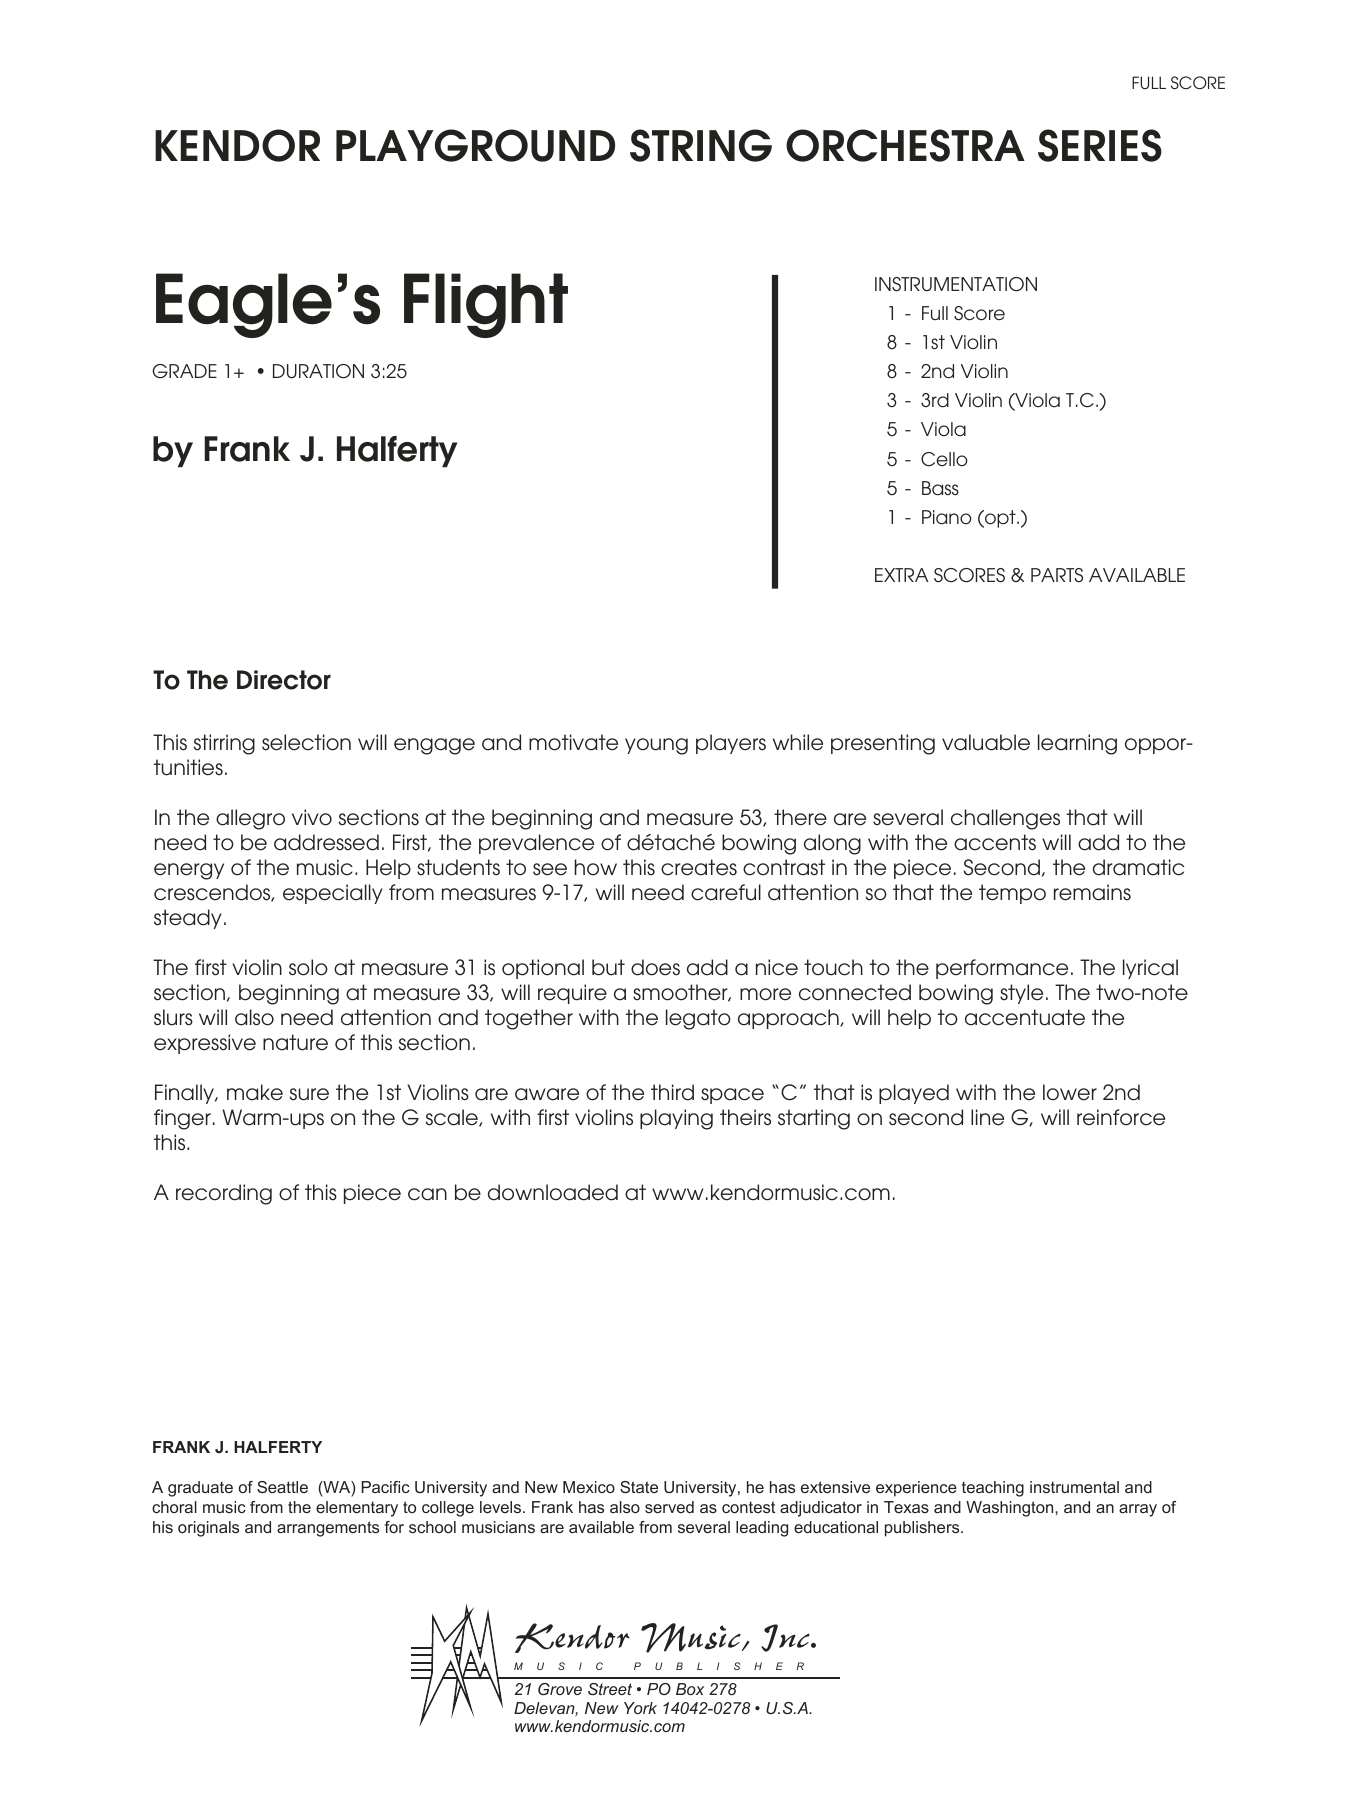 Eagle's Flight - Full Score